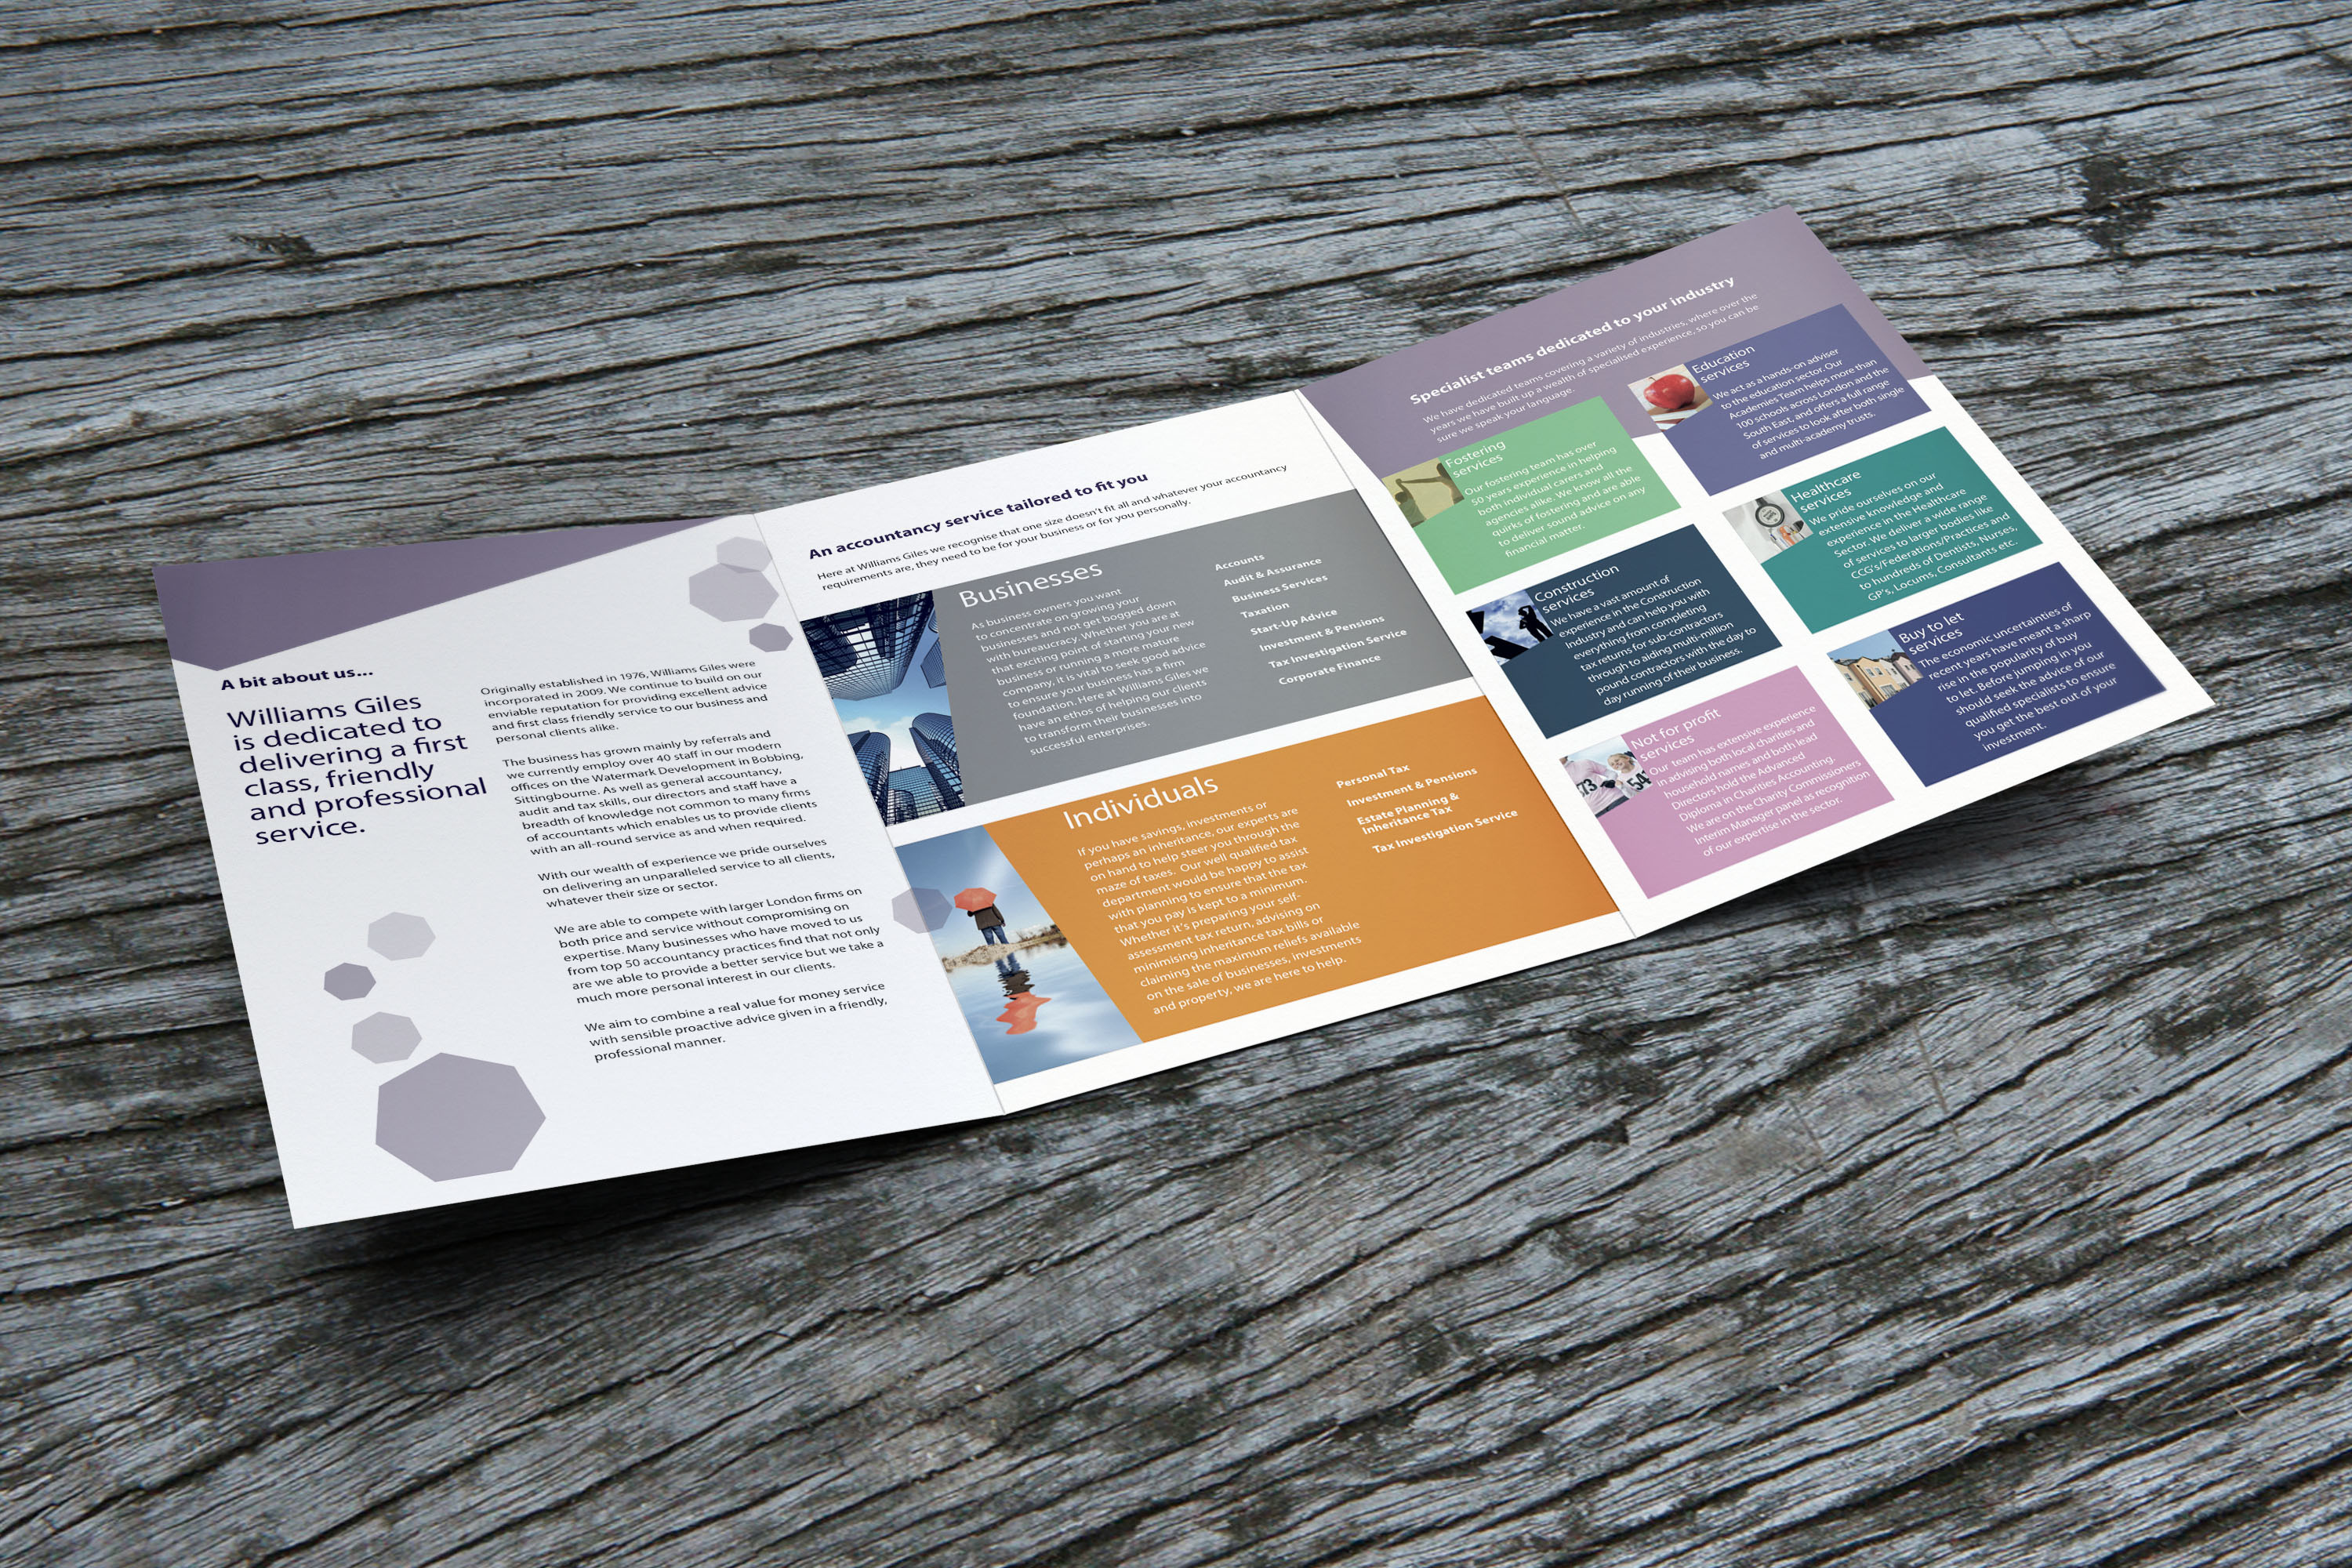 An image showing the open six page brochure designed for Williams Giles